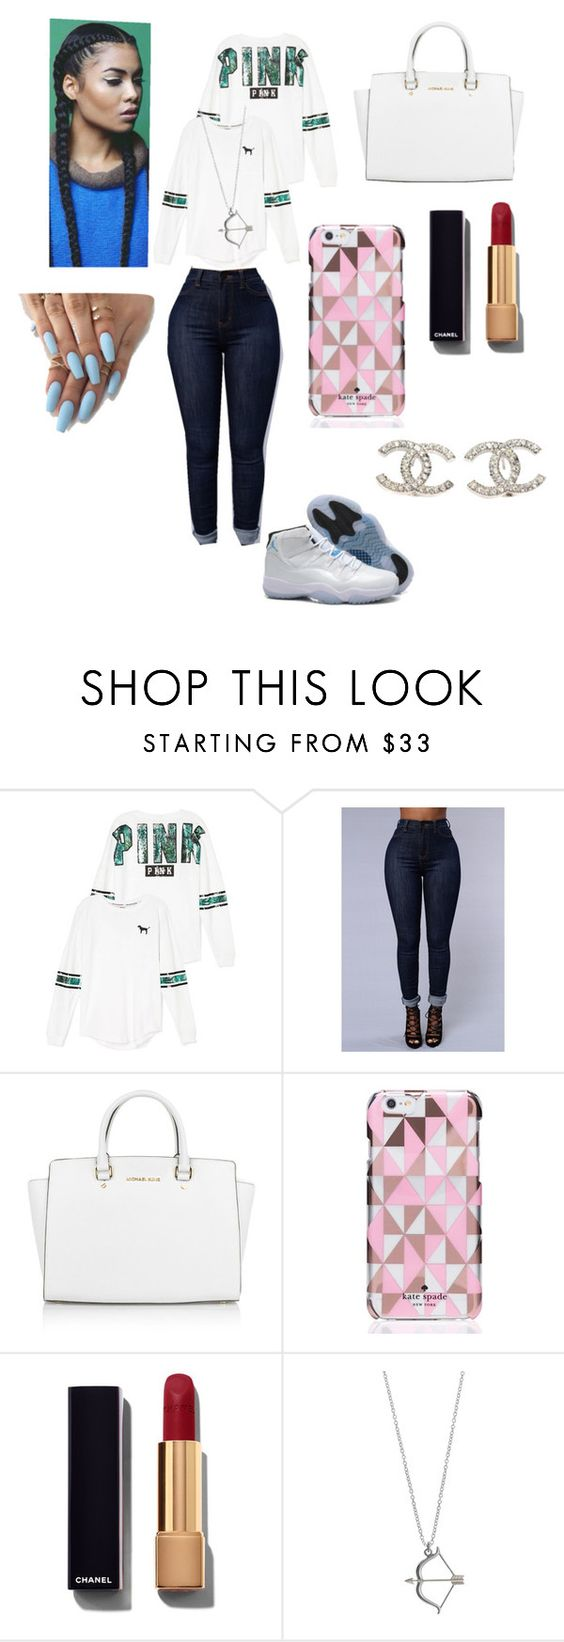 """""""Untitled #9"""" by ramyaw1519 ❤ liked on Polyvore featuring Retrò, Victoria's Secret, Michael Kors, Kate Spade, Chanel, women's clothing, women, female, woman and misses"""